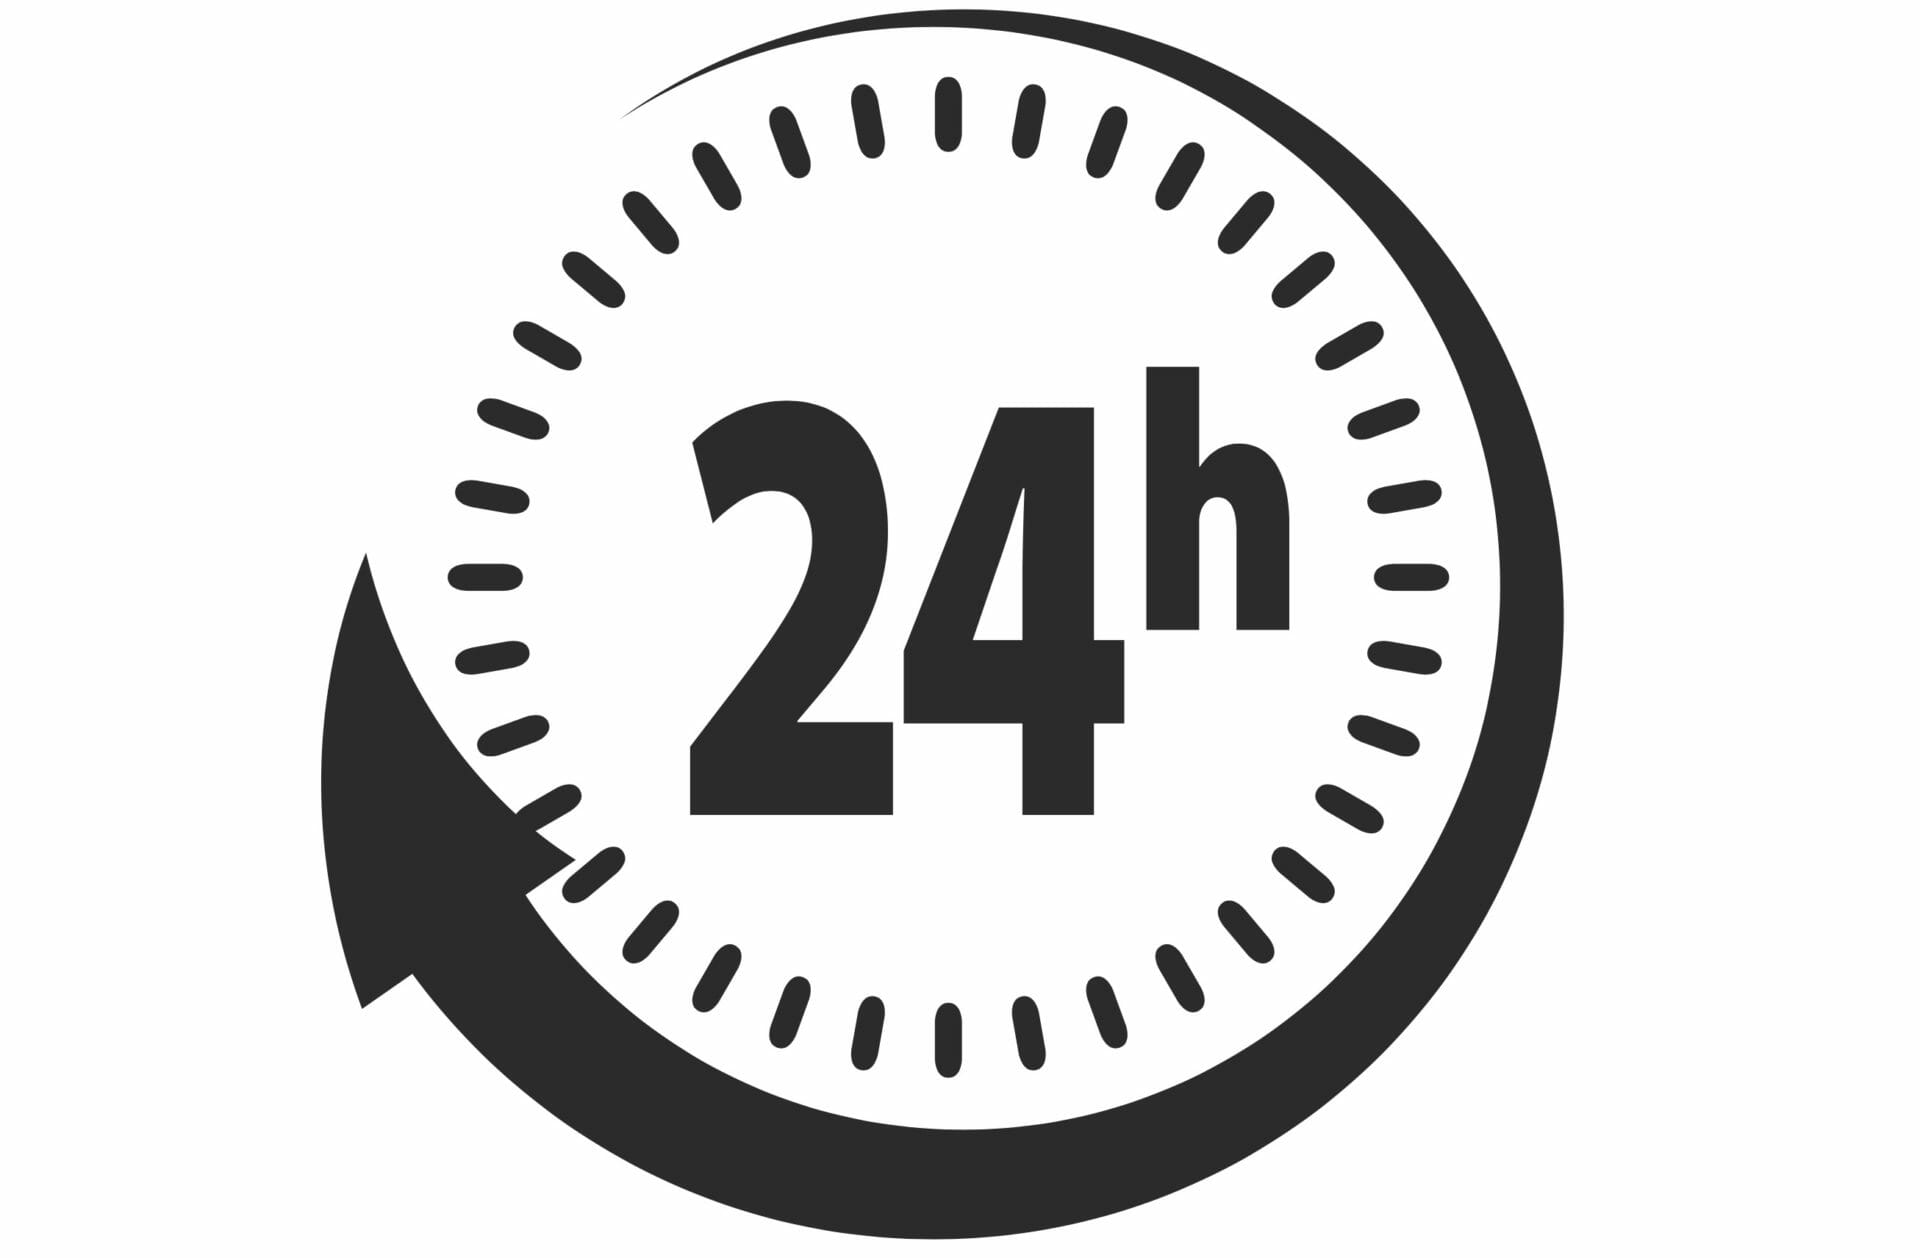 Benefits of a 24-hour fast